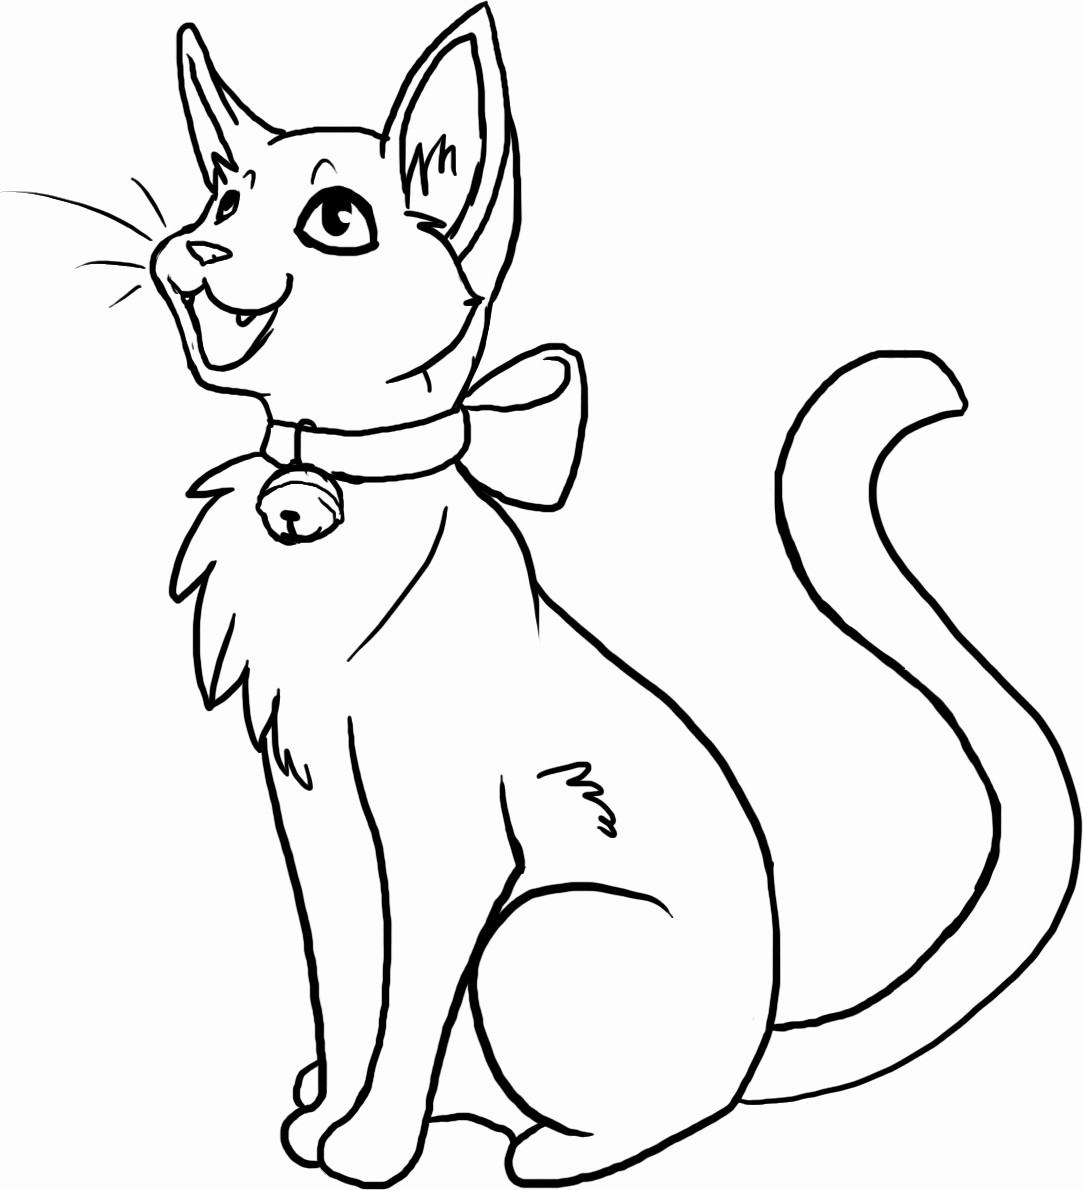 Anime Cats Coloring Pages At Getdrawings